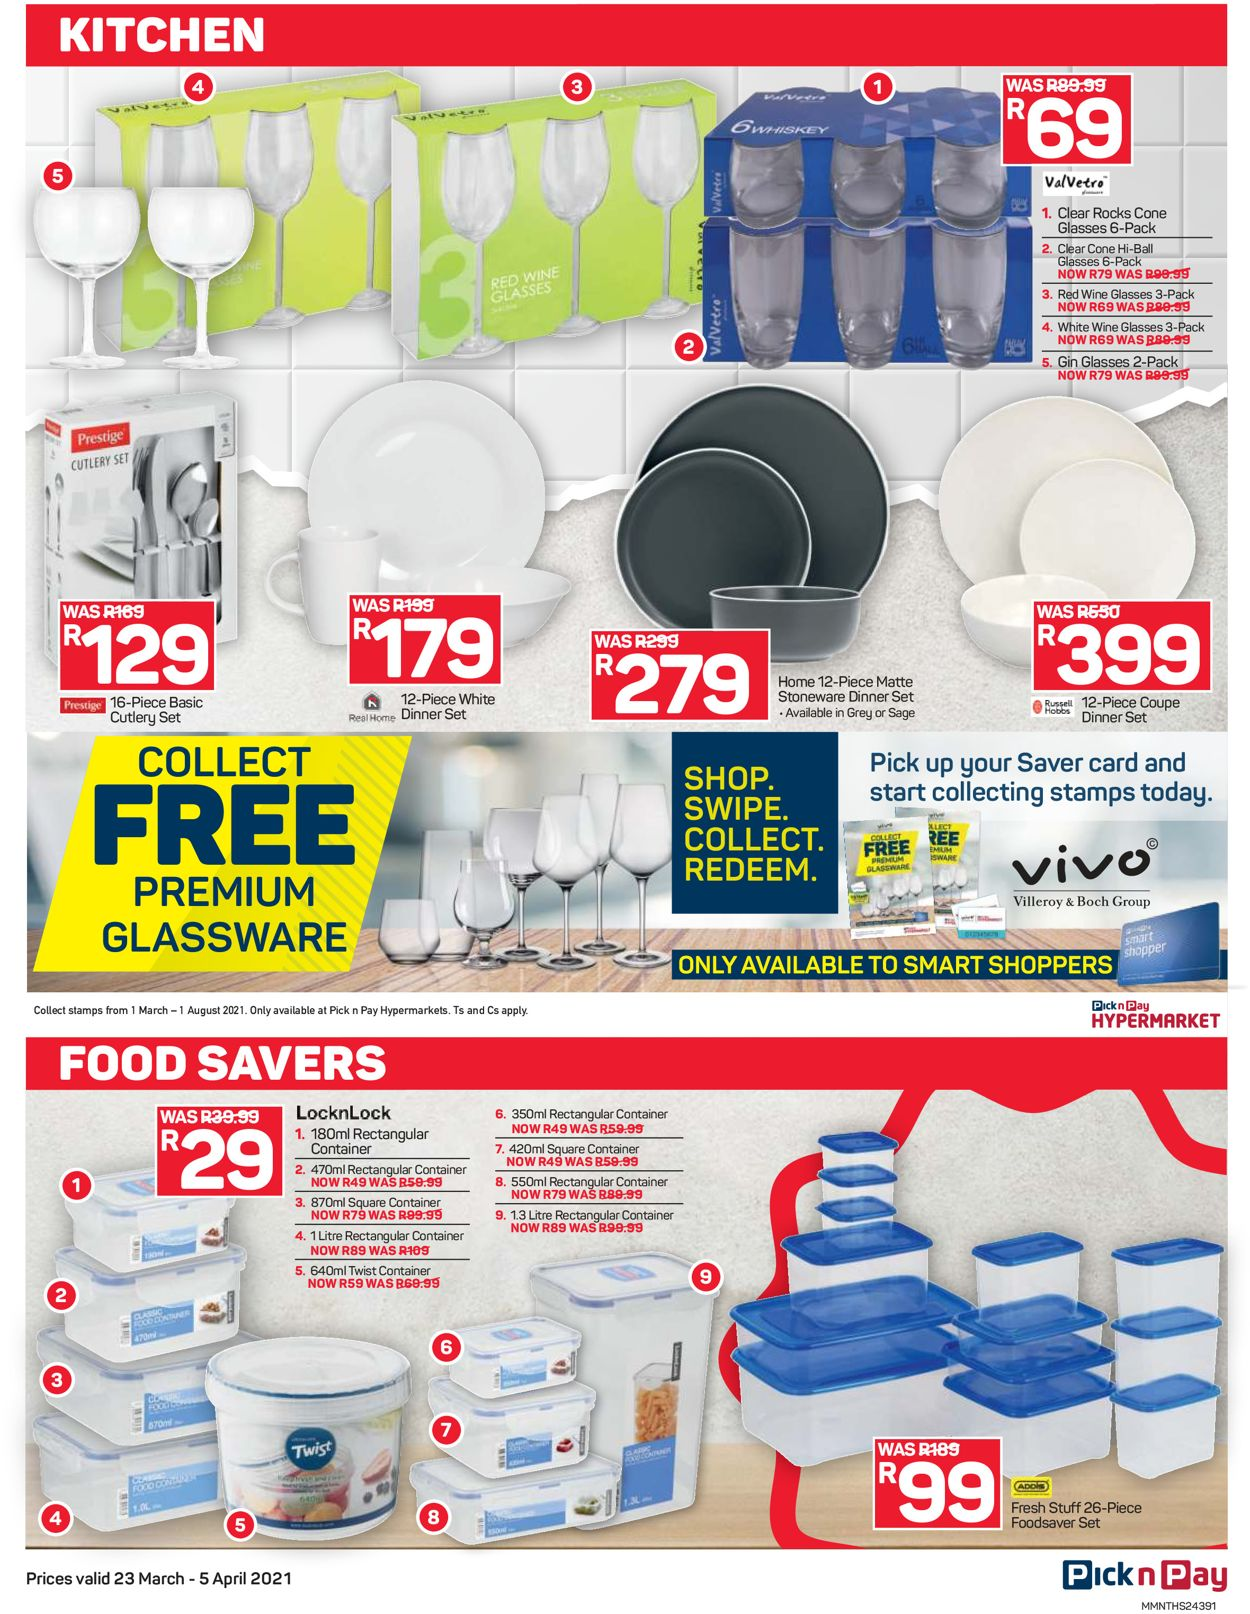 Pick n Pay Catalogue - 2021/03/23-2021/04/05 (Page 3)